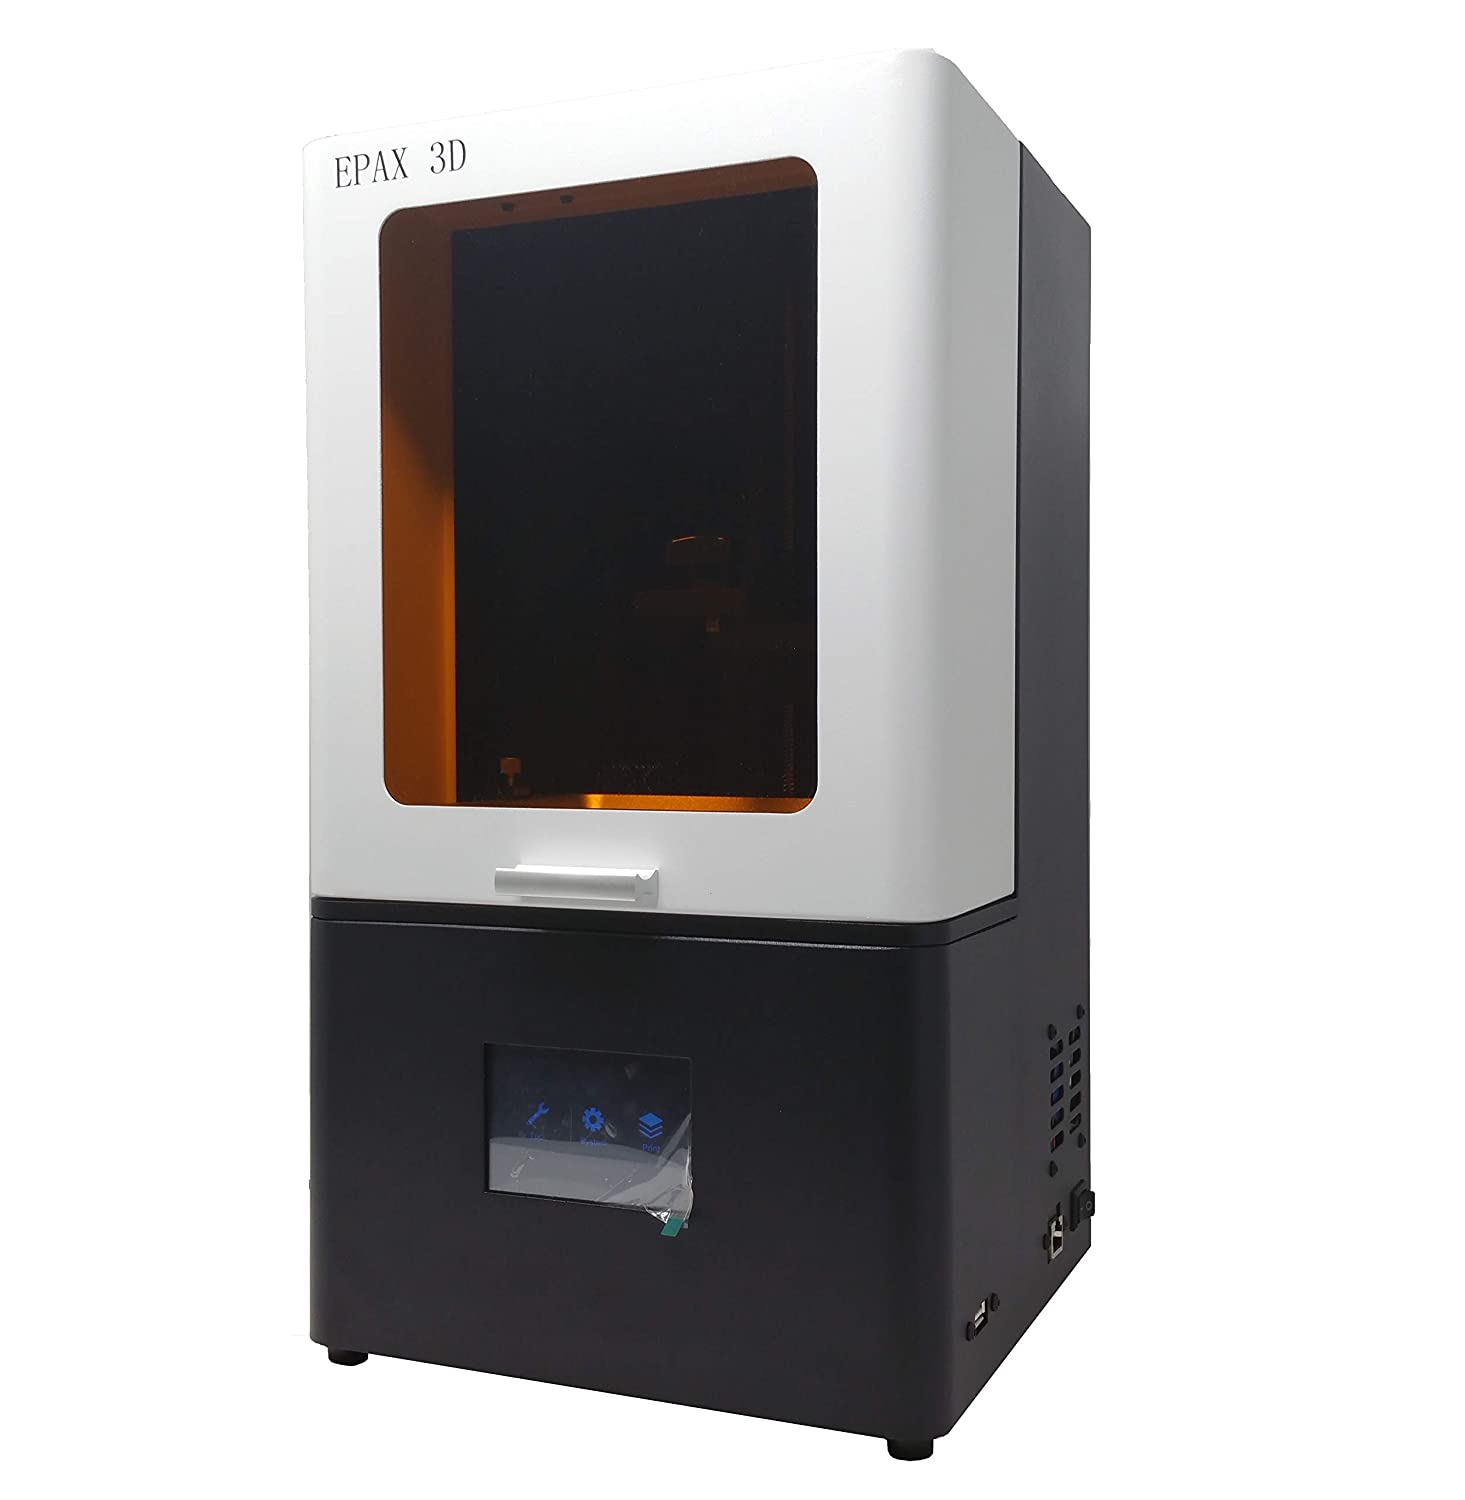 EPAX X1 UV 5.5 inch LCD 3D Printer, Orange Window with Ethernet Port